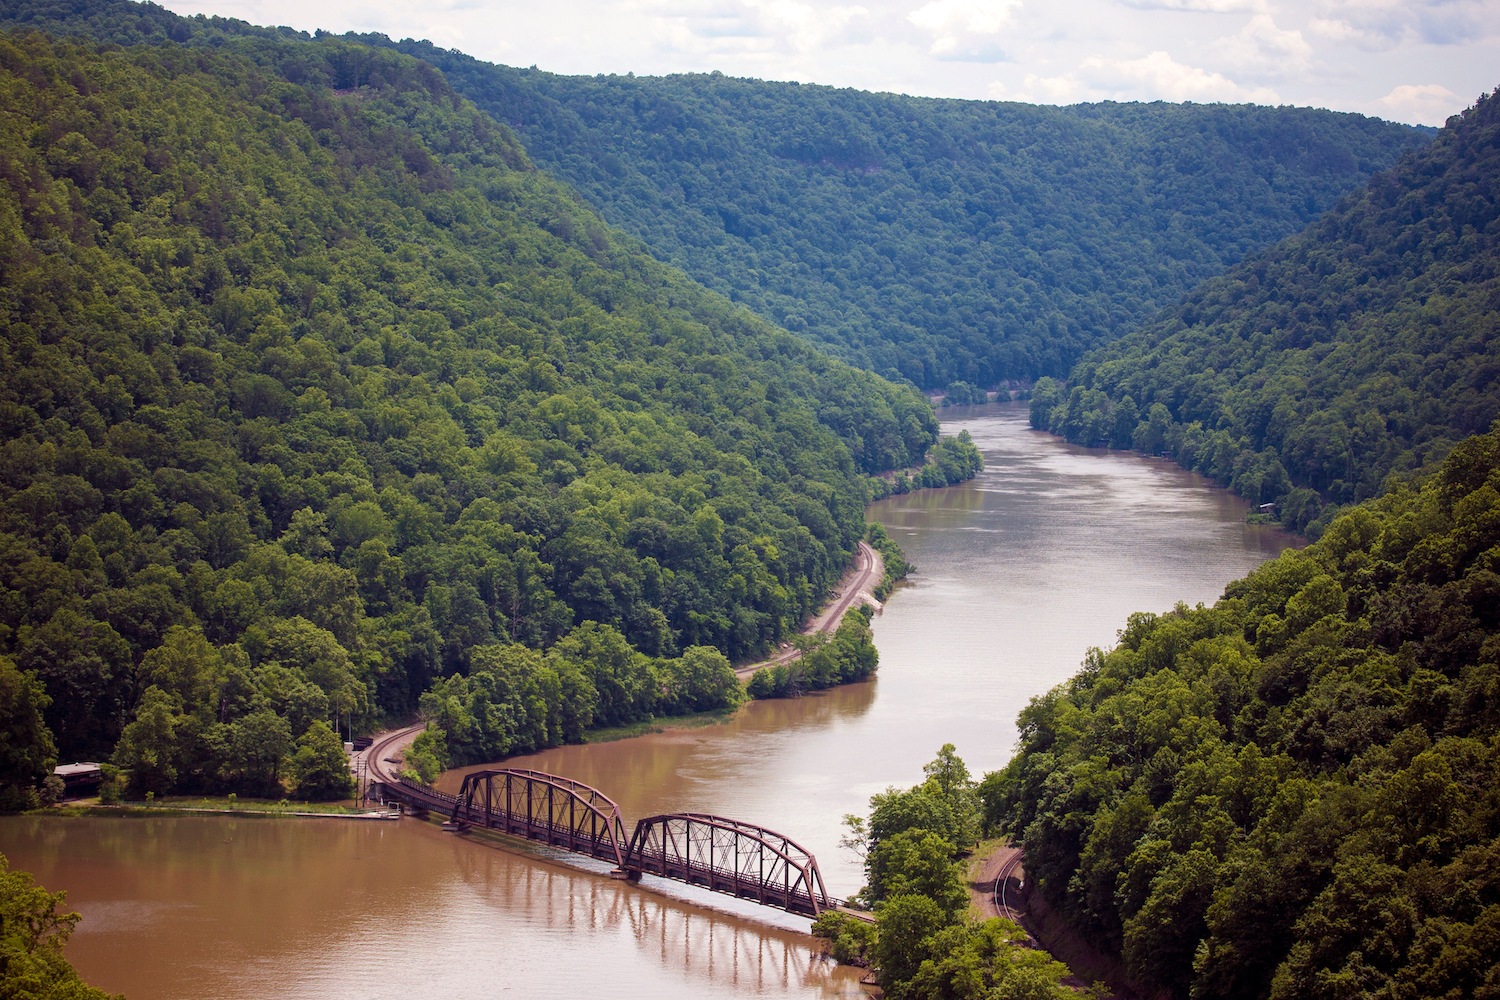 The graceful curves of the Gauley River in West Virginia with lush summer forest rising sharply from its' banks, a train tressel crossing near the bottom of the image.